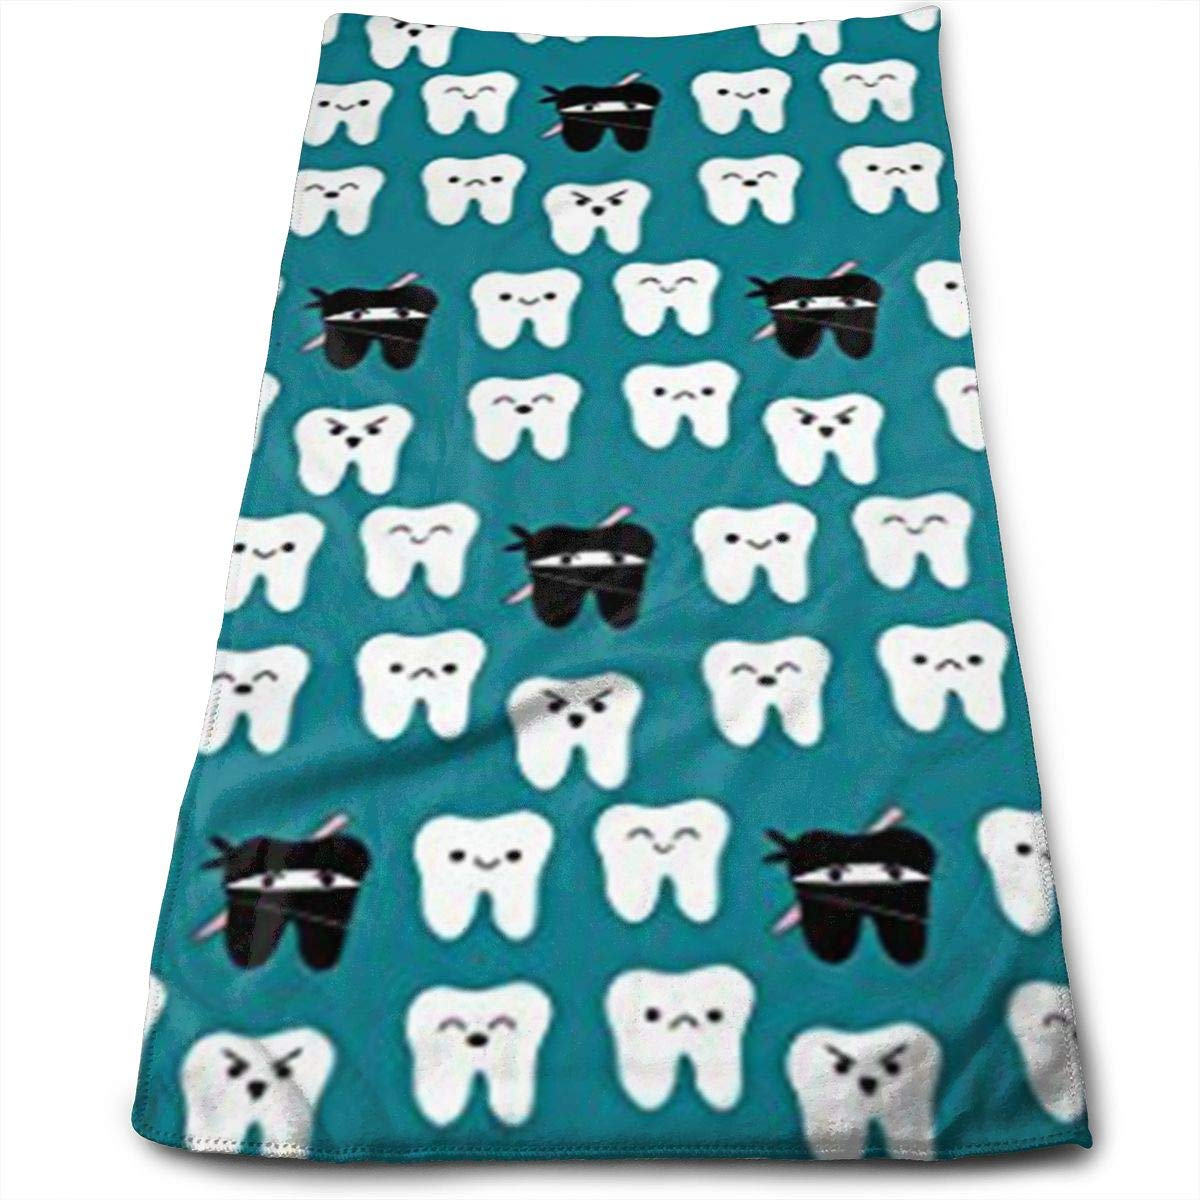 Amazon.com: Yitlon8 Tooth Fabric Way of The Ninja Tooth 100 ...